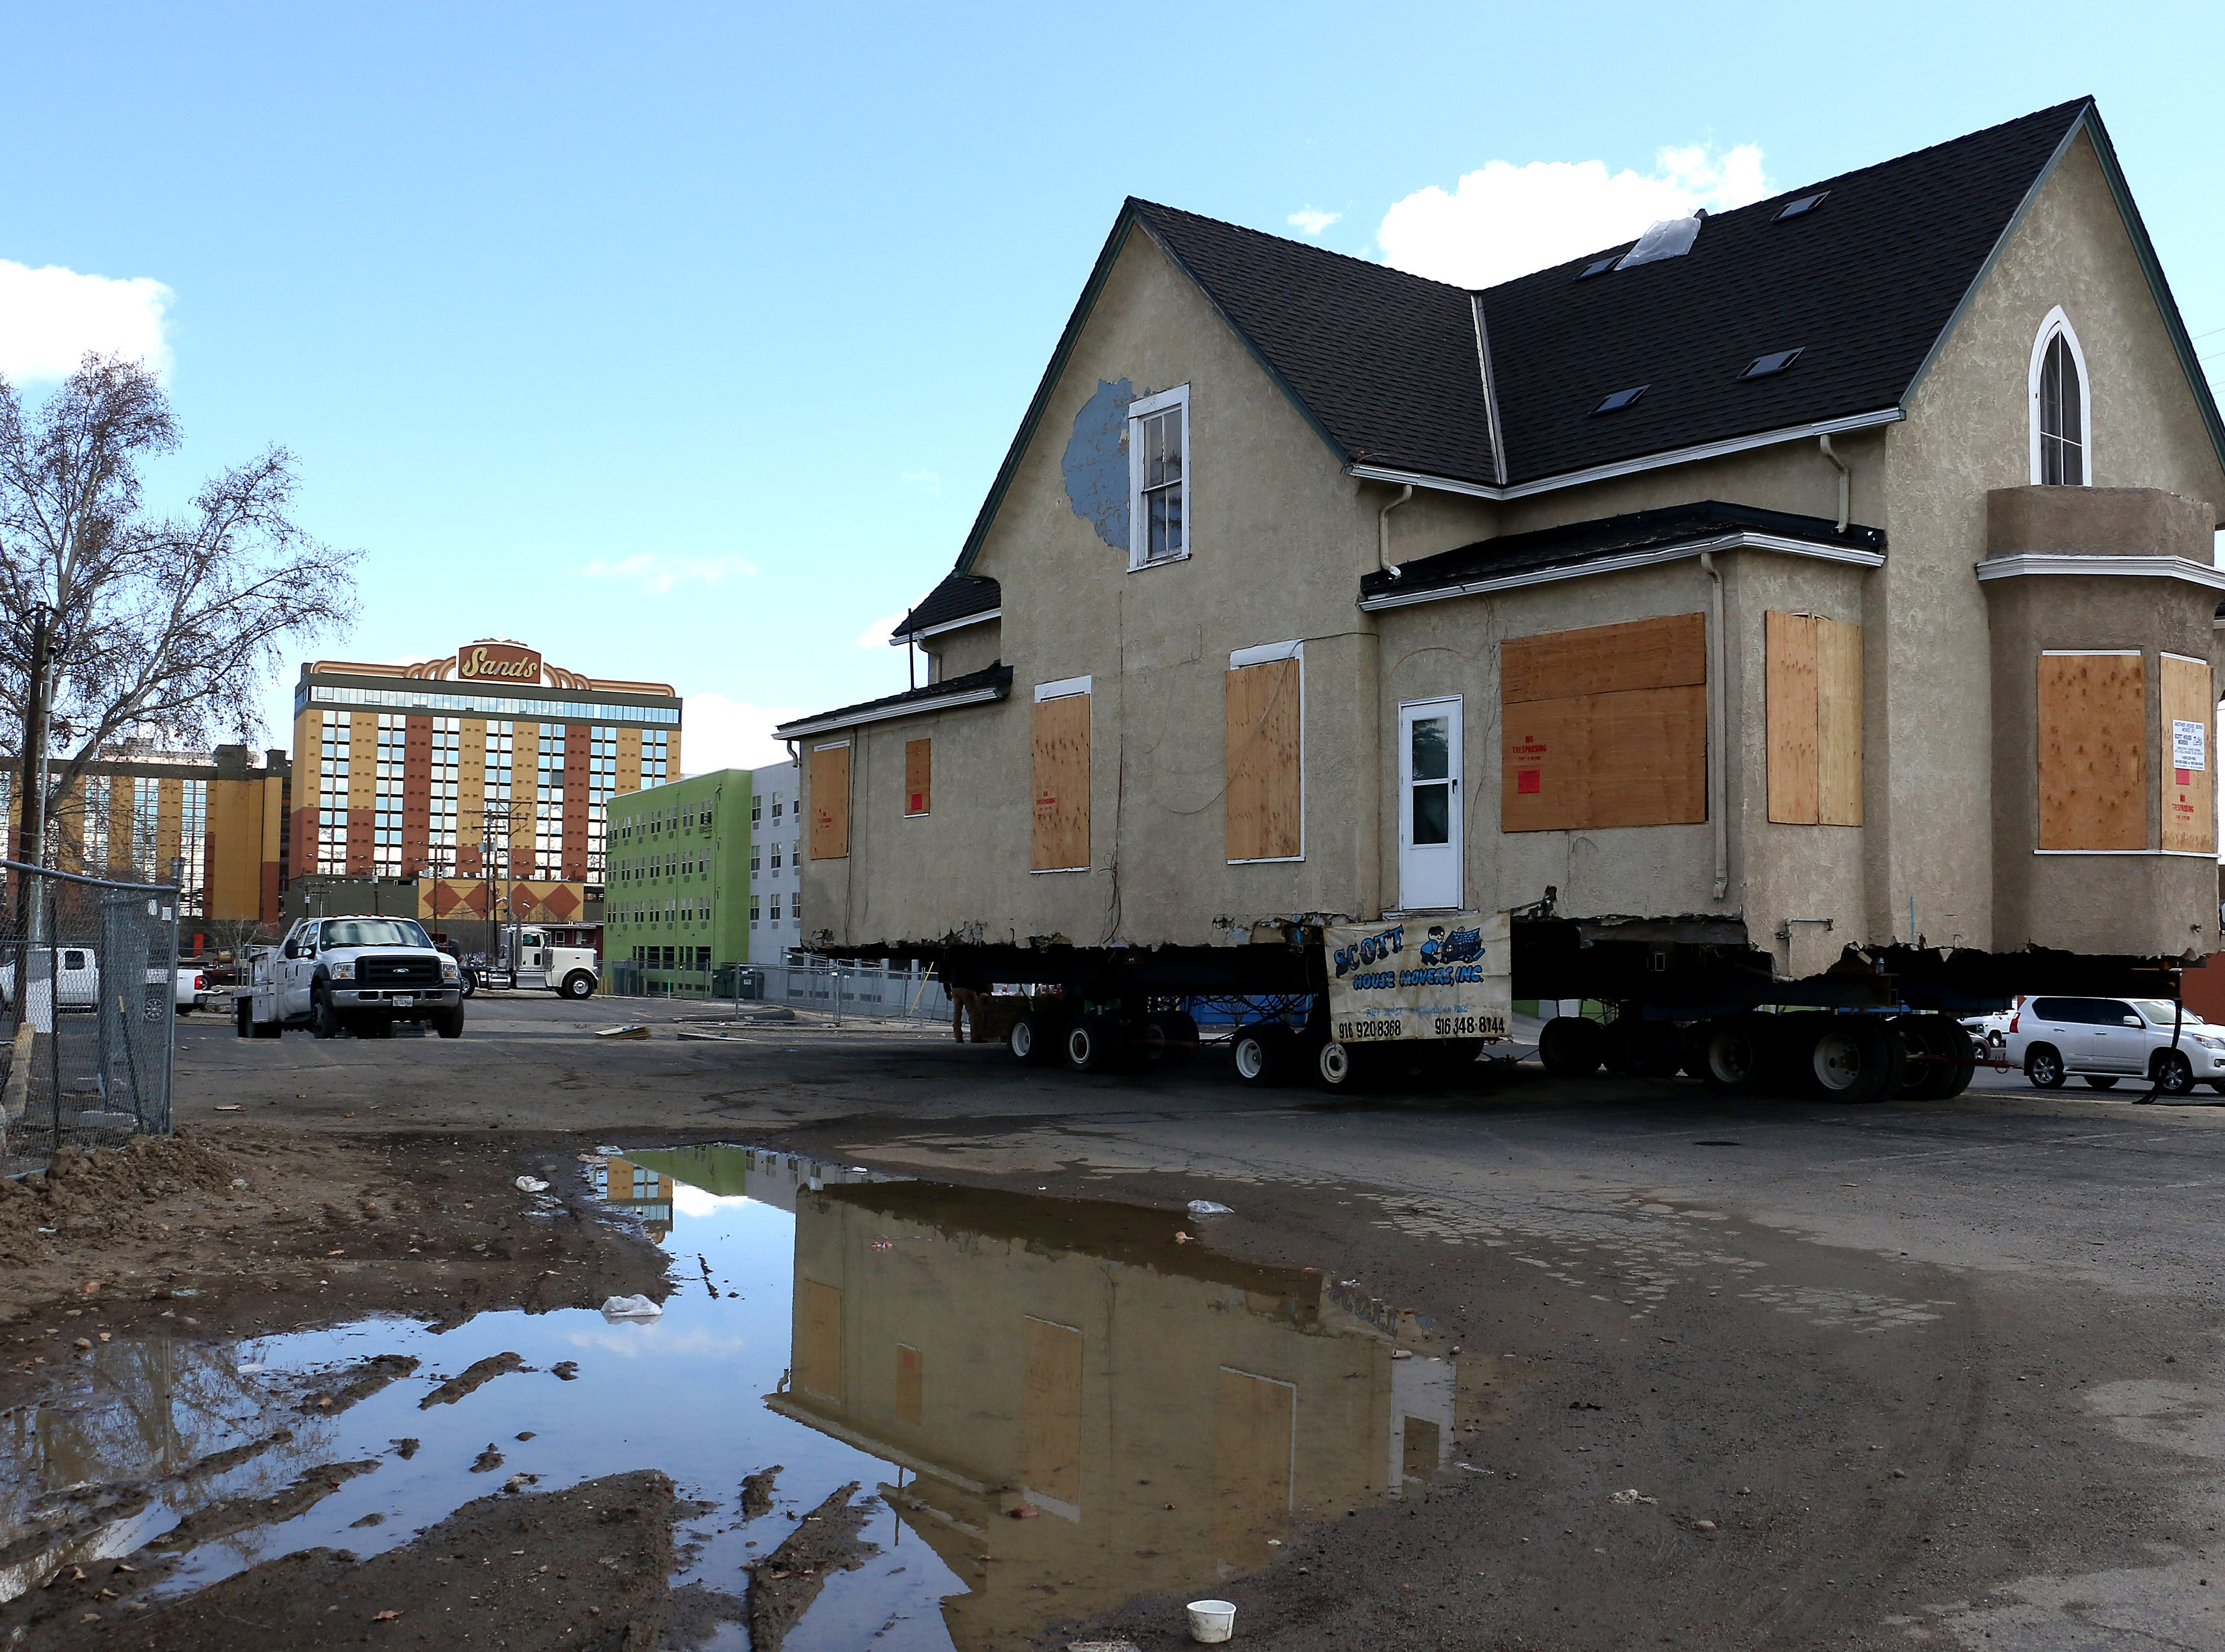 The historic Nystrom Guest House gets moved by Scott House Movers to its new location in downtown Reno on March 13, 2019. The house, which was added to the National Register of Historic Places in 2001, is being moved by Jacobs Entertainment from its current location at 333 Ralston St. to a plot on the 700 block of West Fourth Street.